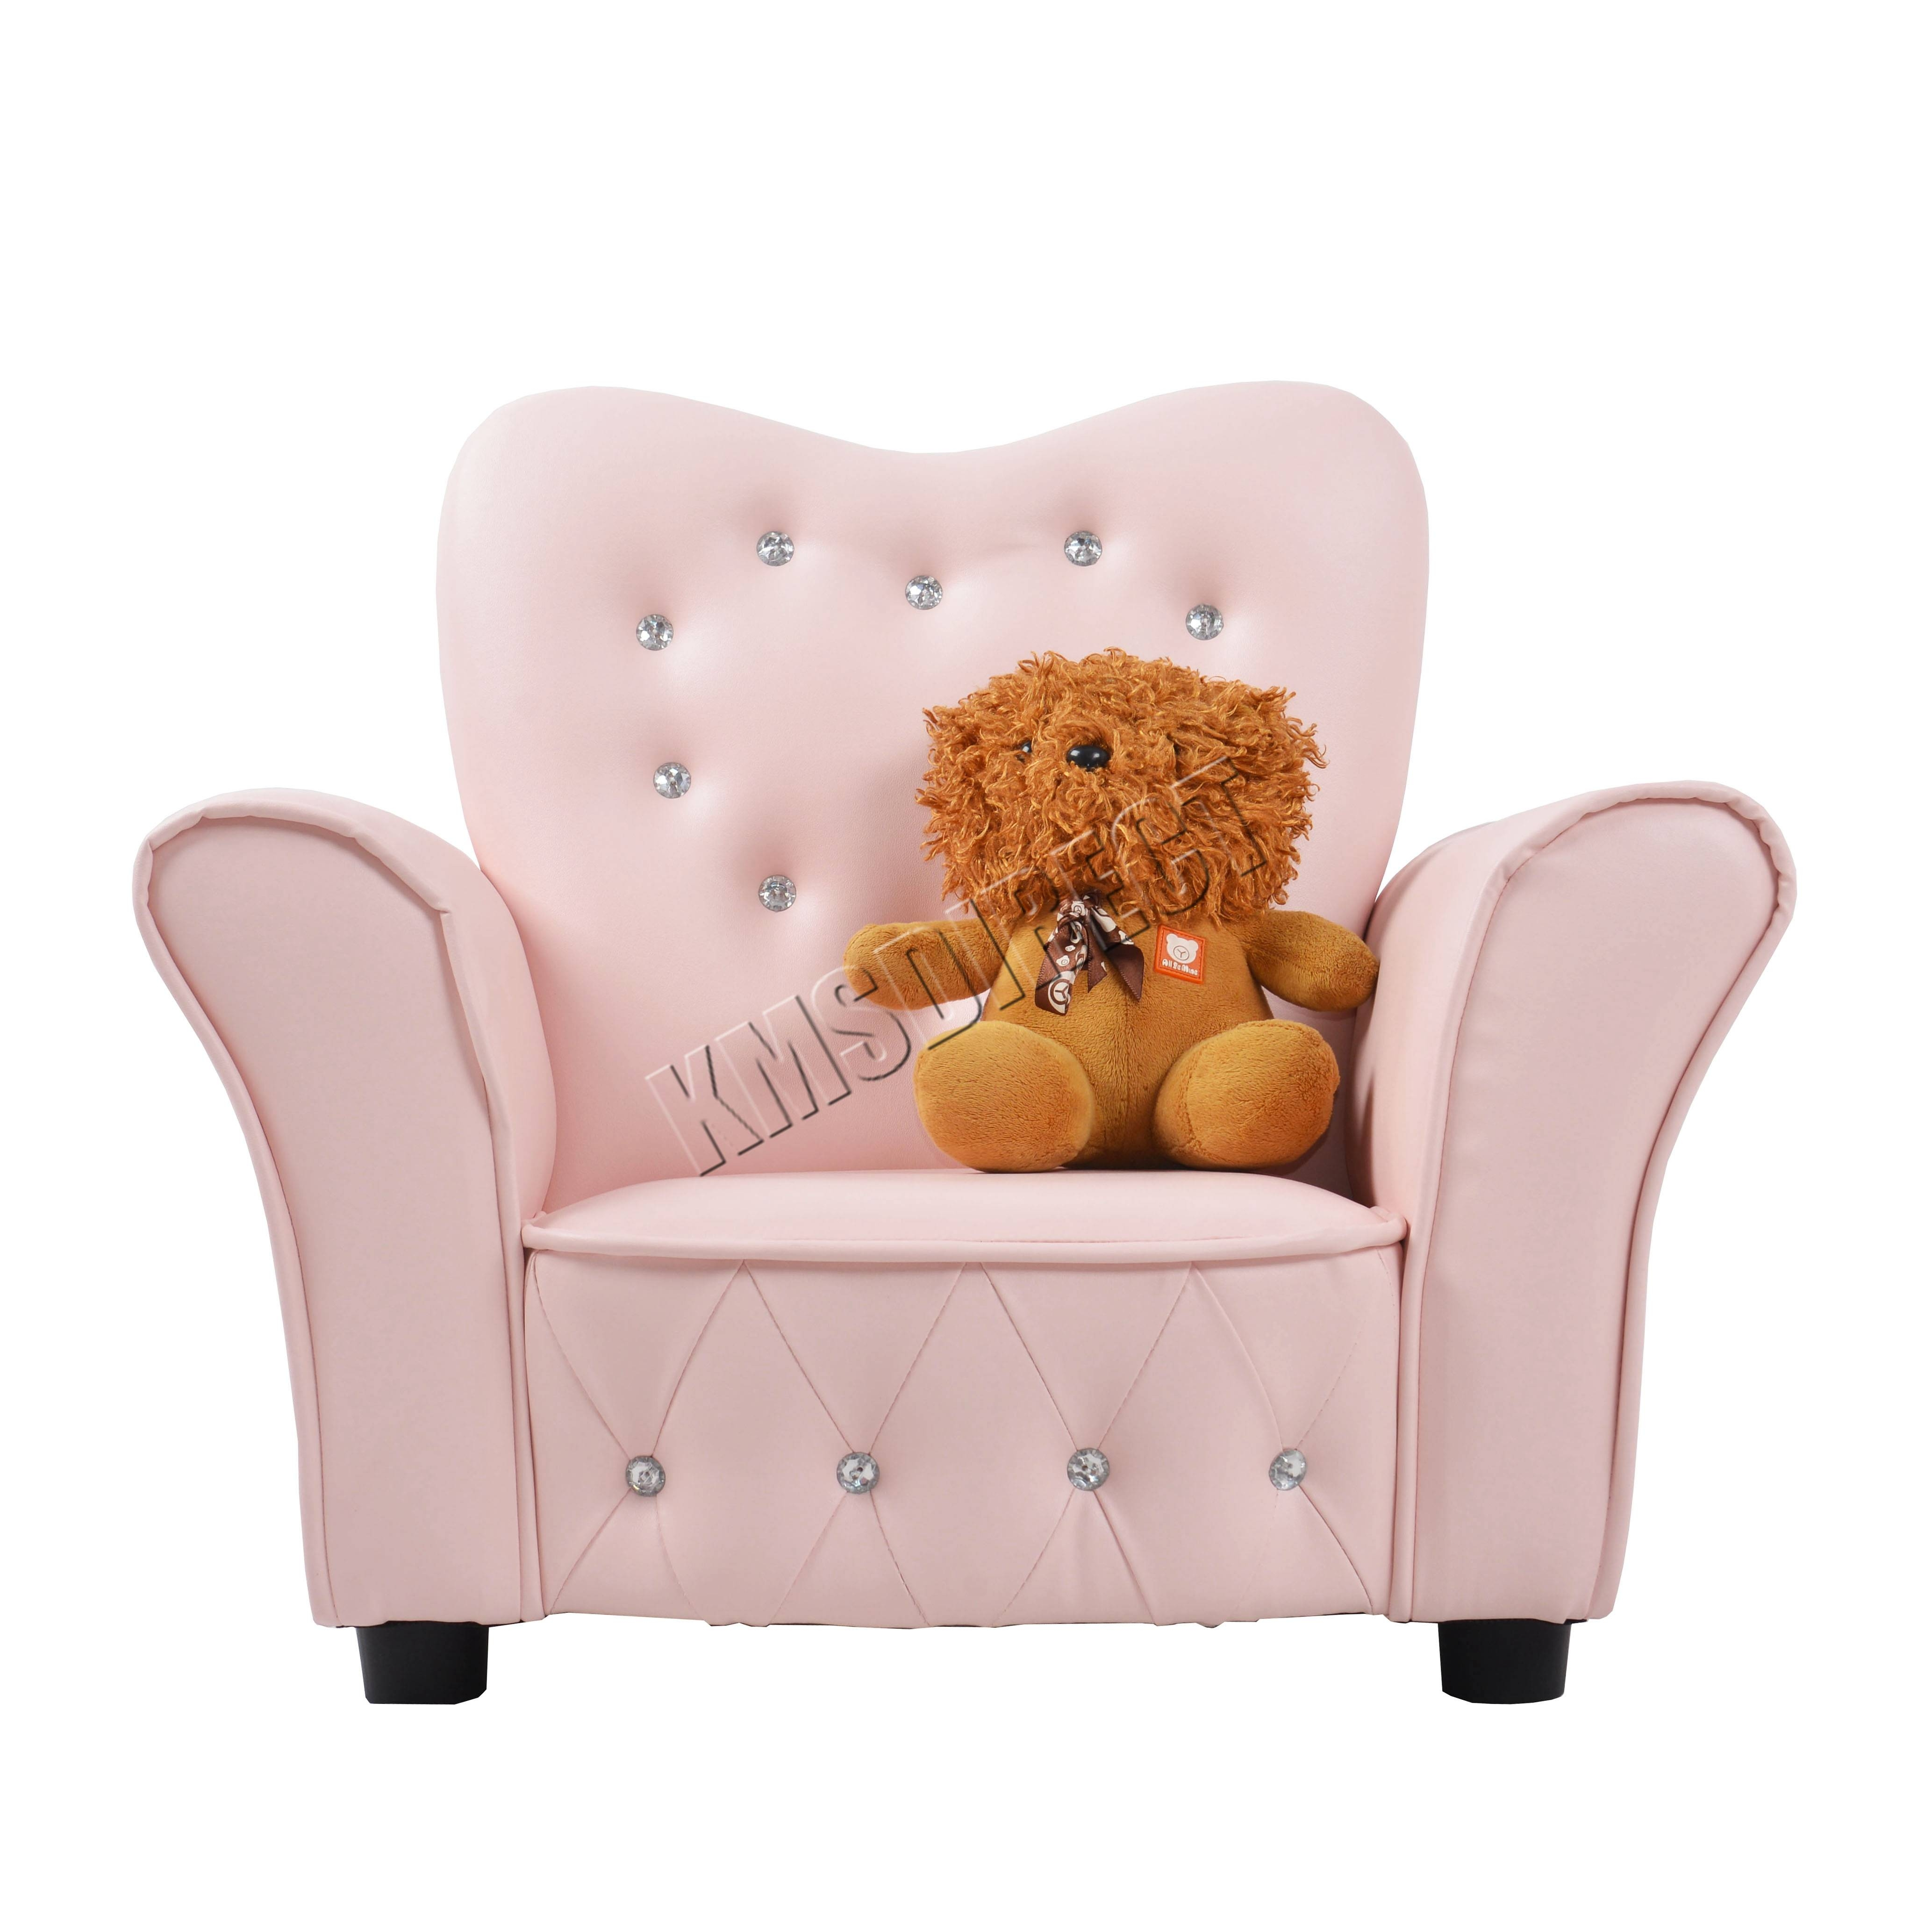 Foxhunter Kids Armchair Games Chair Boys Girls Sofa Children Seat intended for Childrens Sofa Chairs (Image 6 of 15)